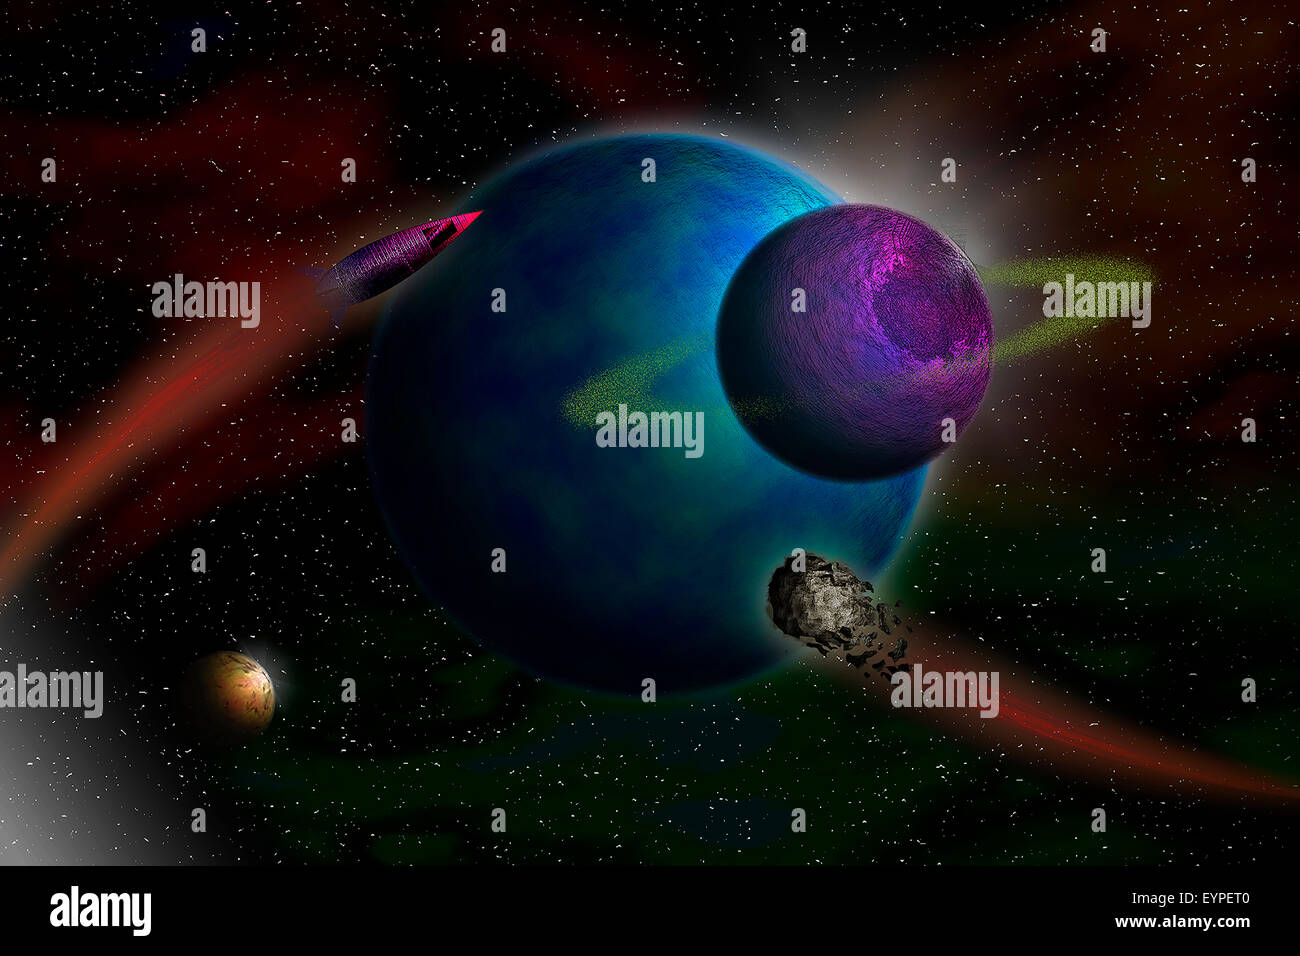 Planets and asteroids - Stock Image